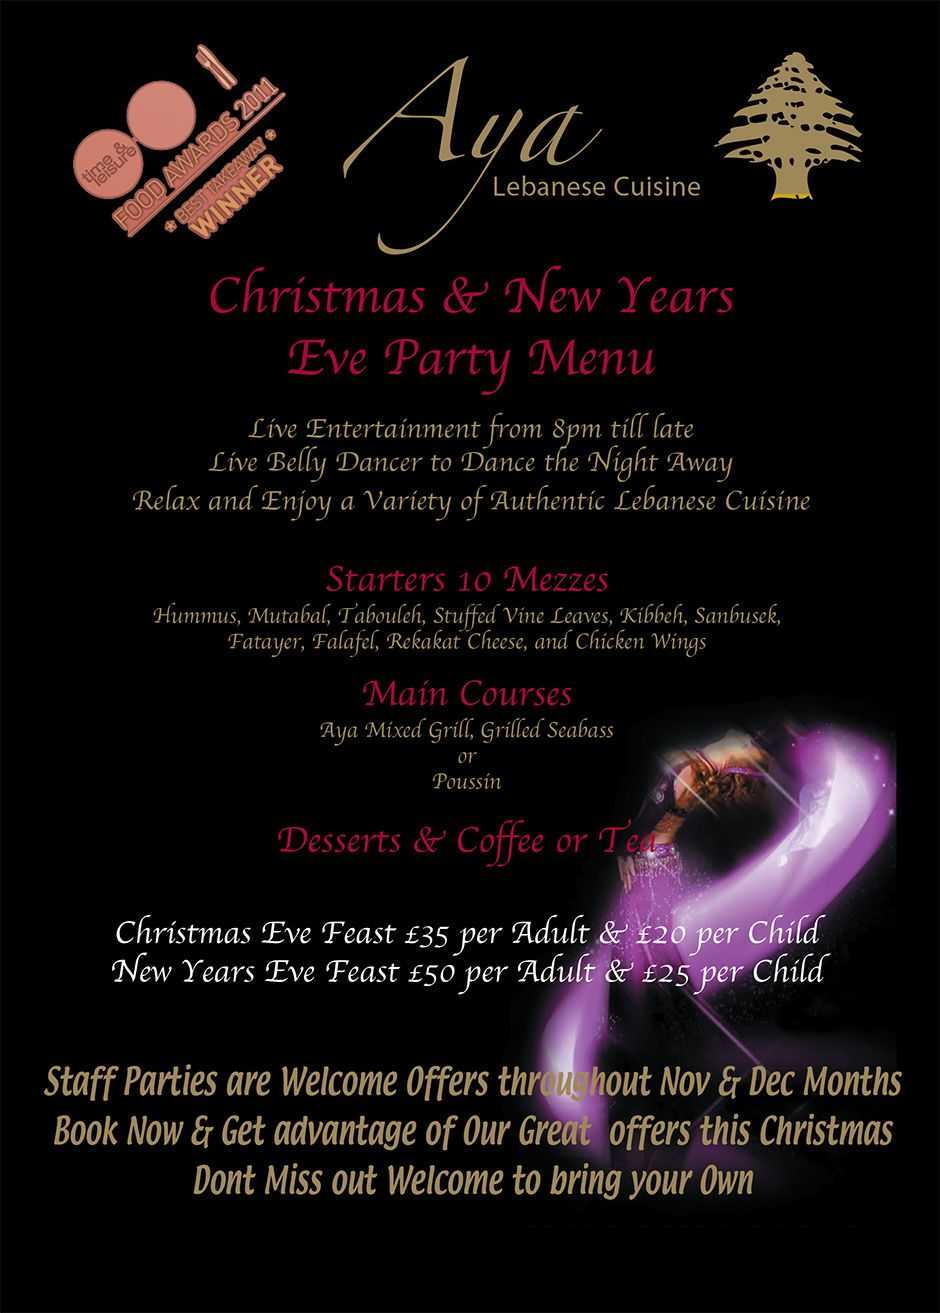 Christmas & New Year's Eve Party Menu!